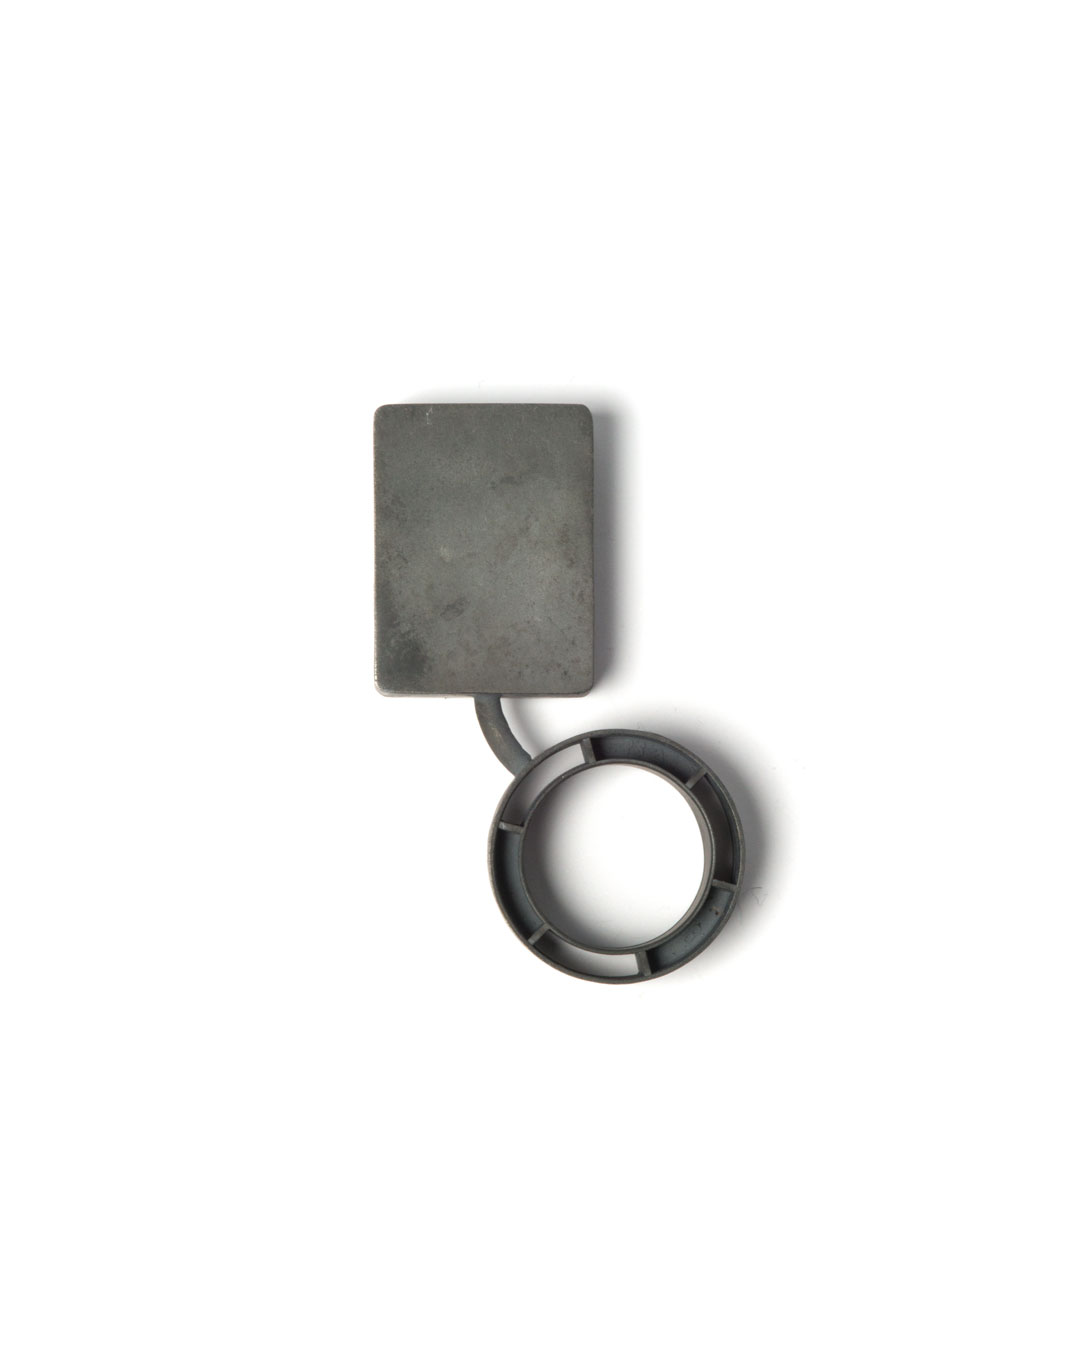 Winfried Krüger, untitled, 2010, brooch; oxidised silver, glass, 95 x 50 mm, €1940